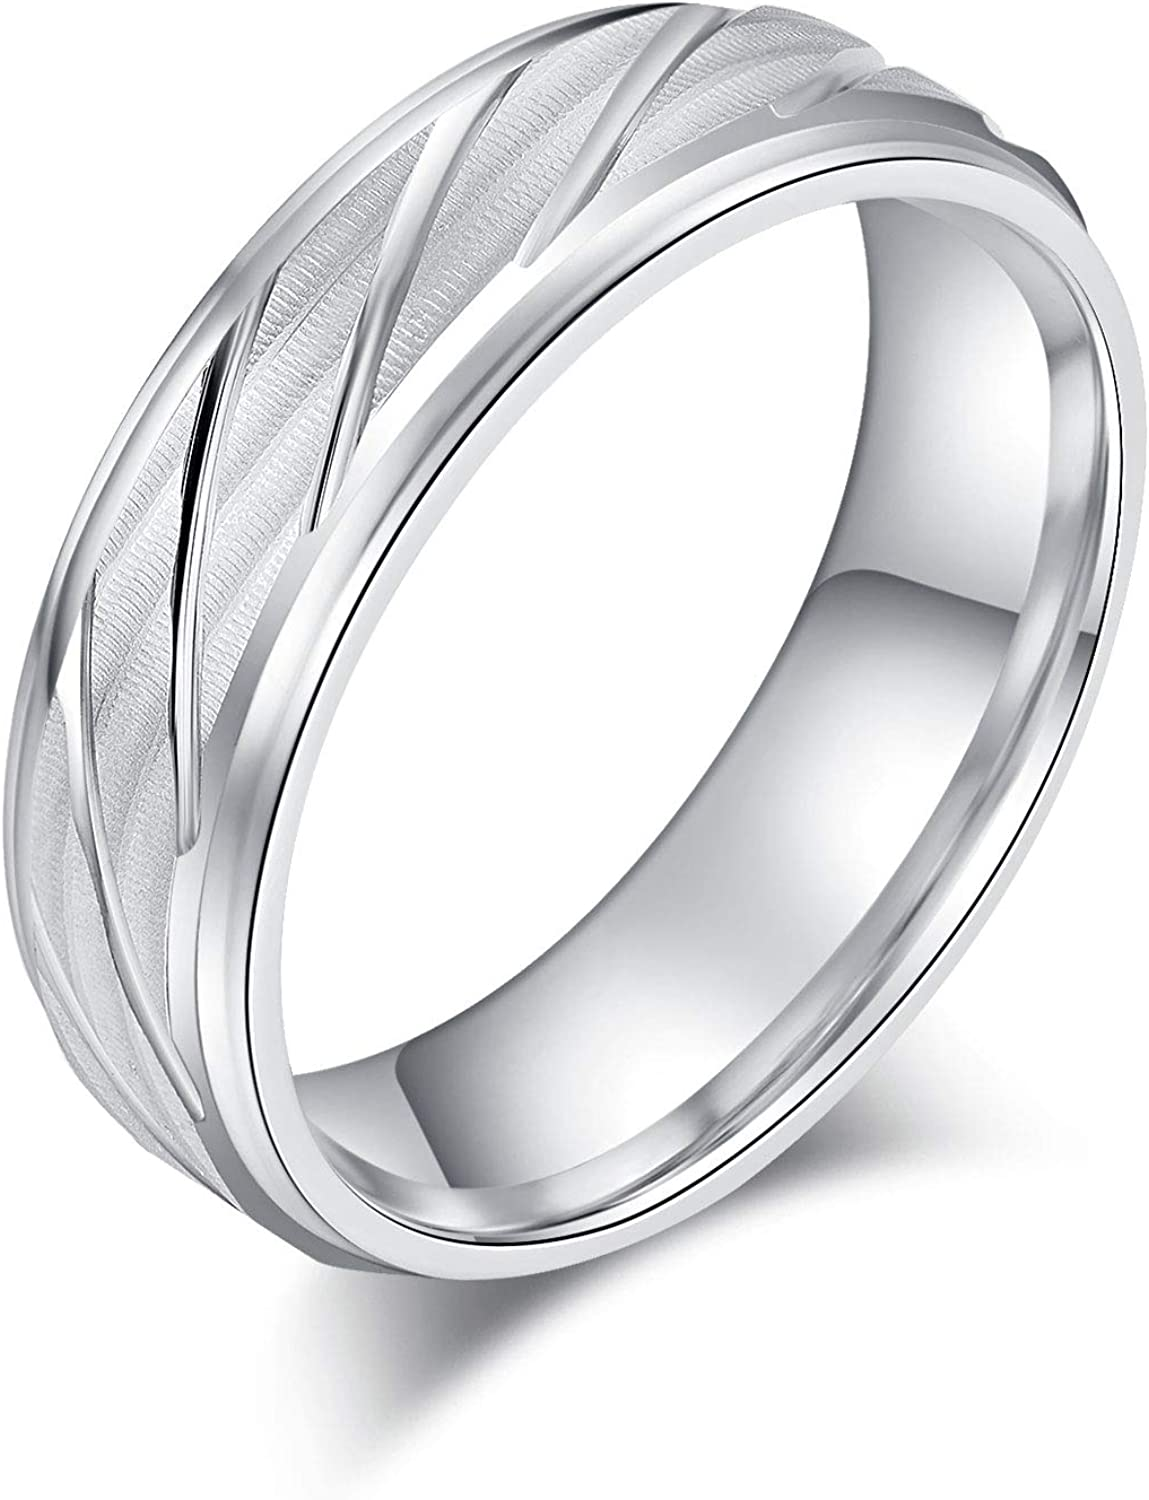 6mm Unisex Comfort Fit Direct stock discount Sterling Silver Finish and Li Matte Waves 25% OFF